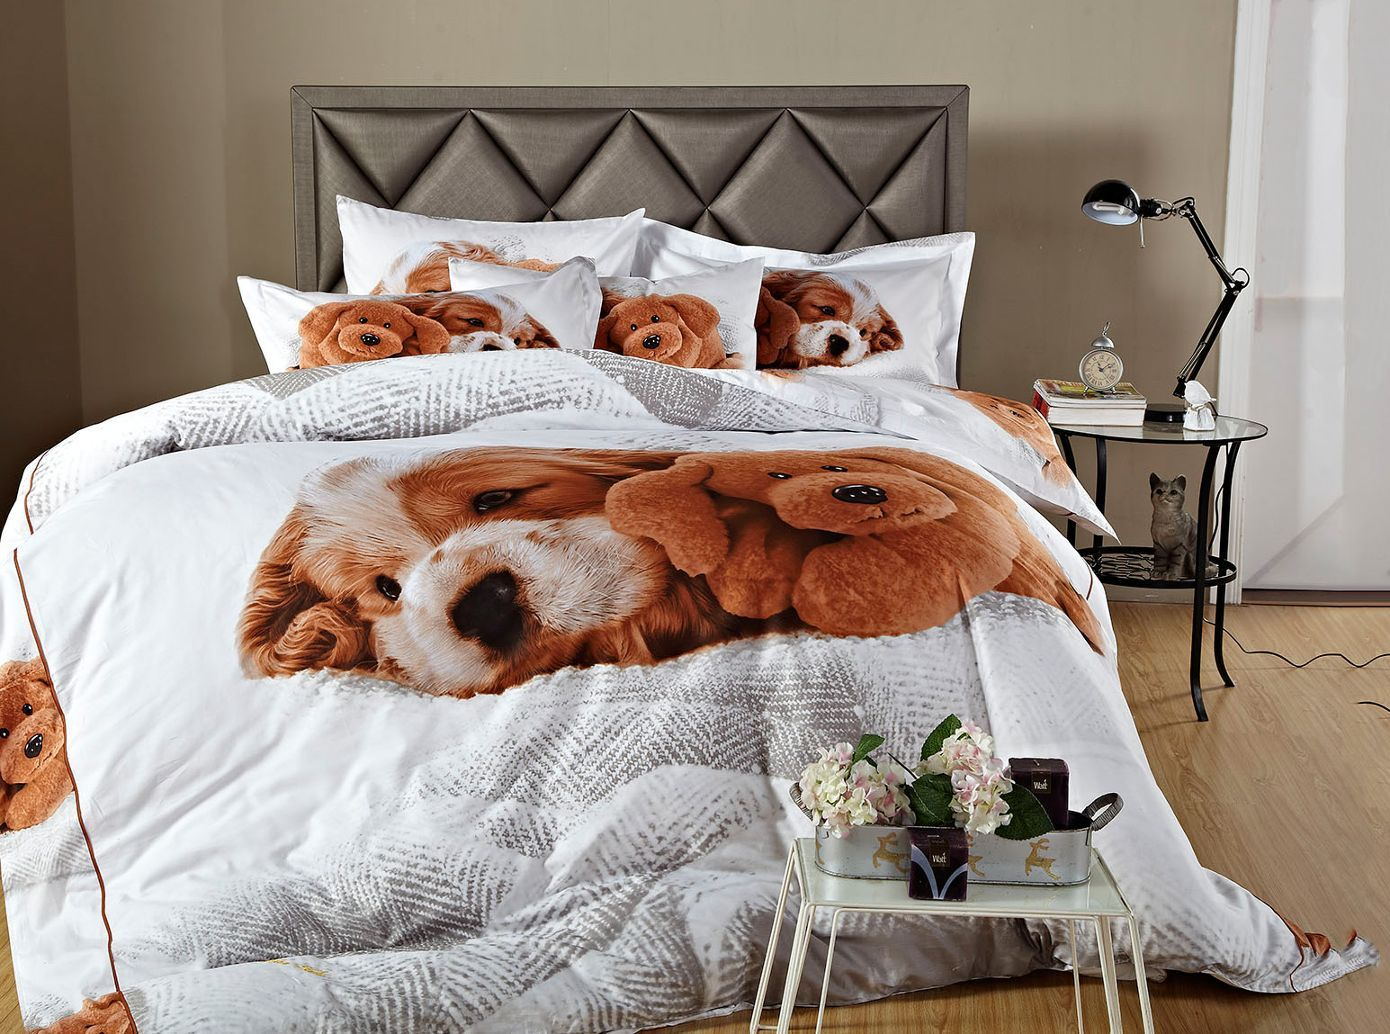 Doggies 3D Puppy Dog Print Bedding DM488 By Dolce Mela Cotton Duvet Cover  Set   Absolutely Precious!!